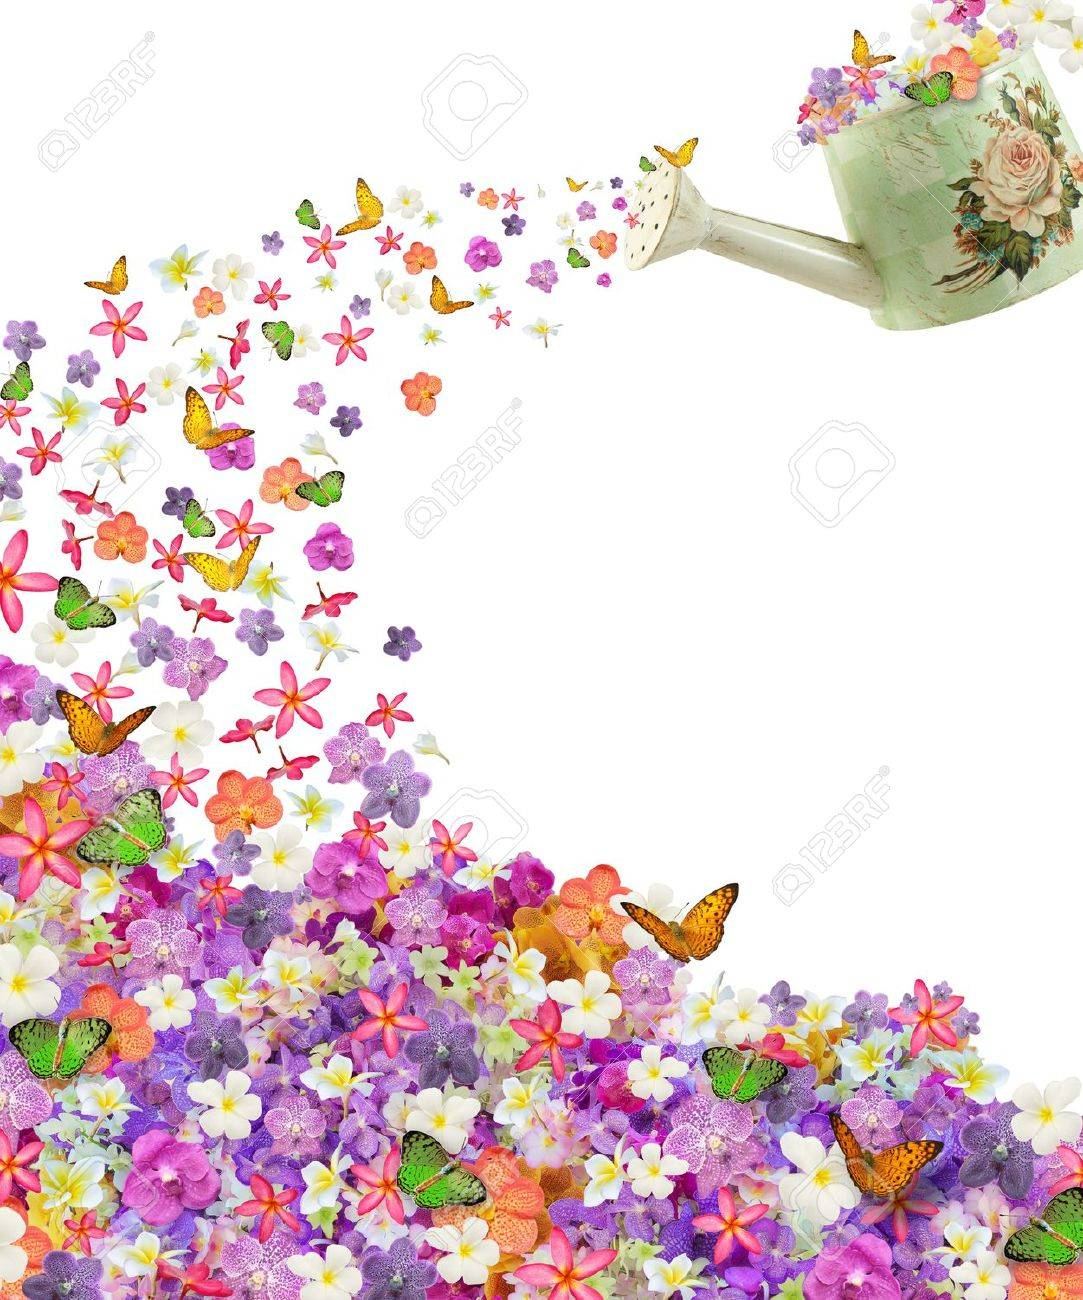 butterfly on many flowers - 16396404